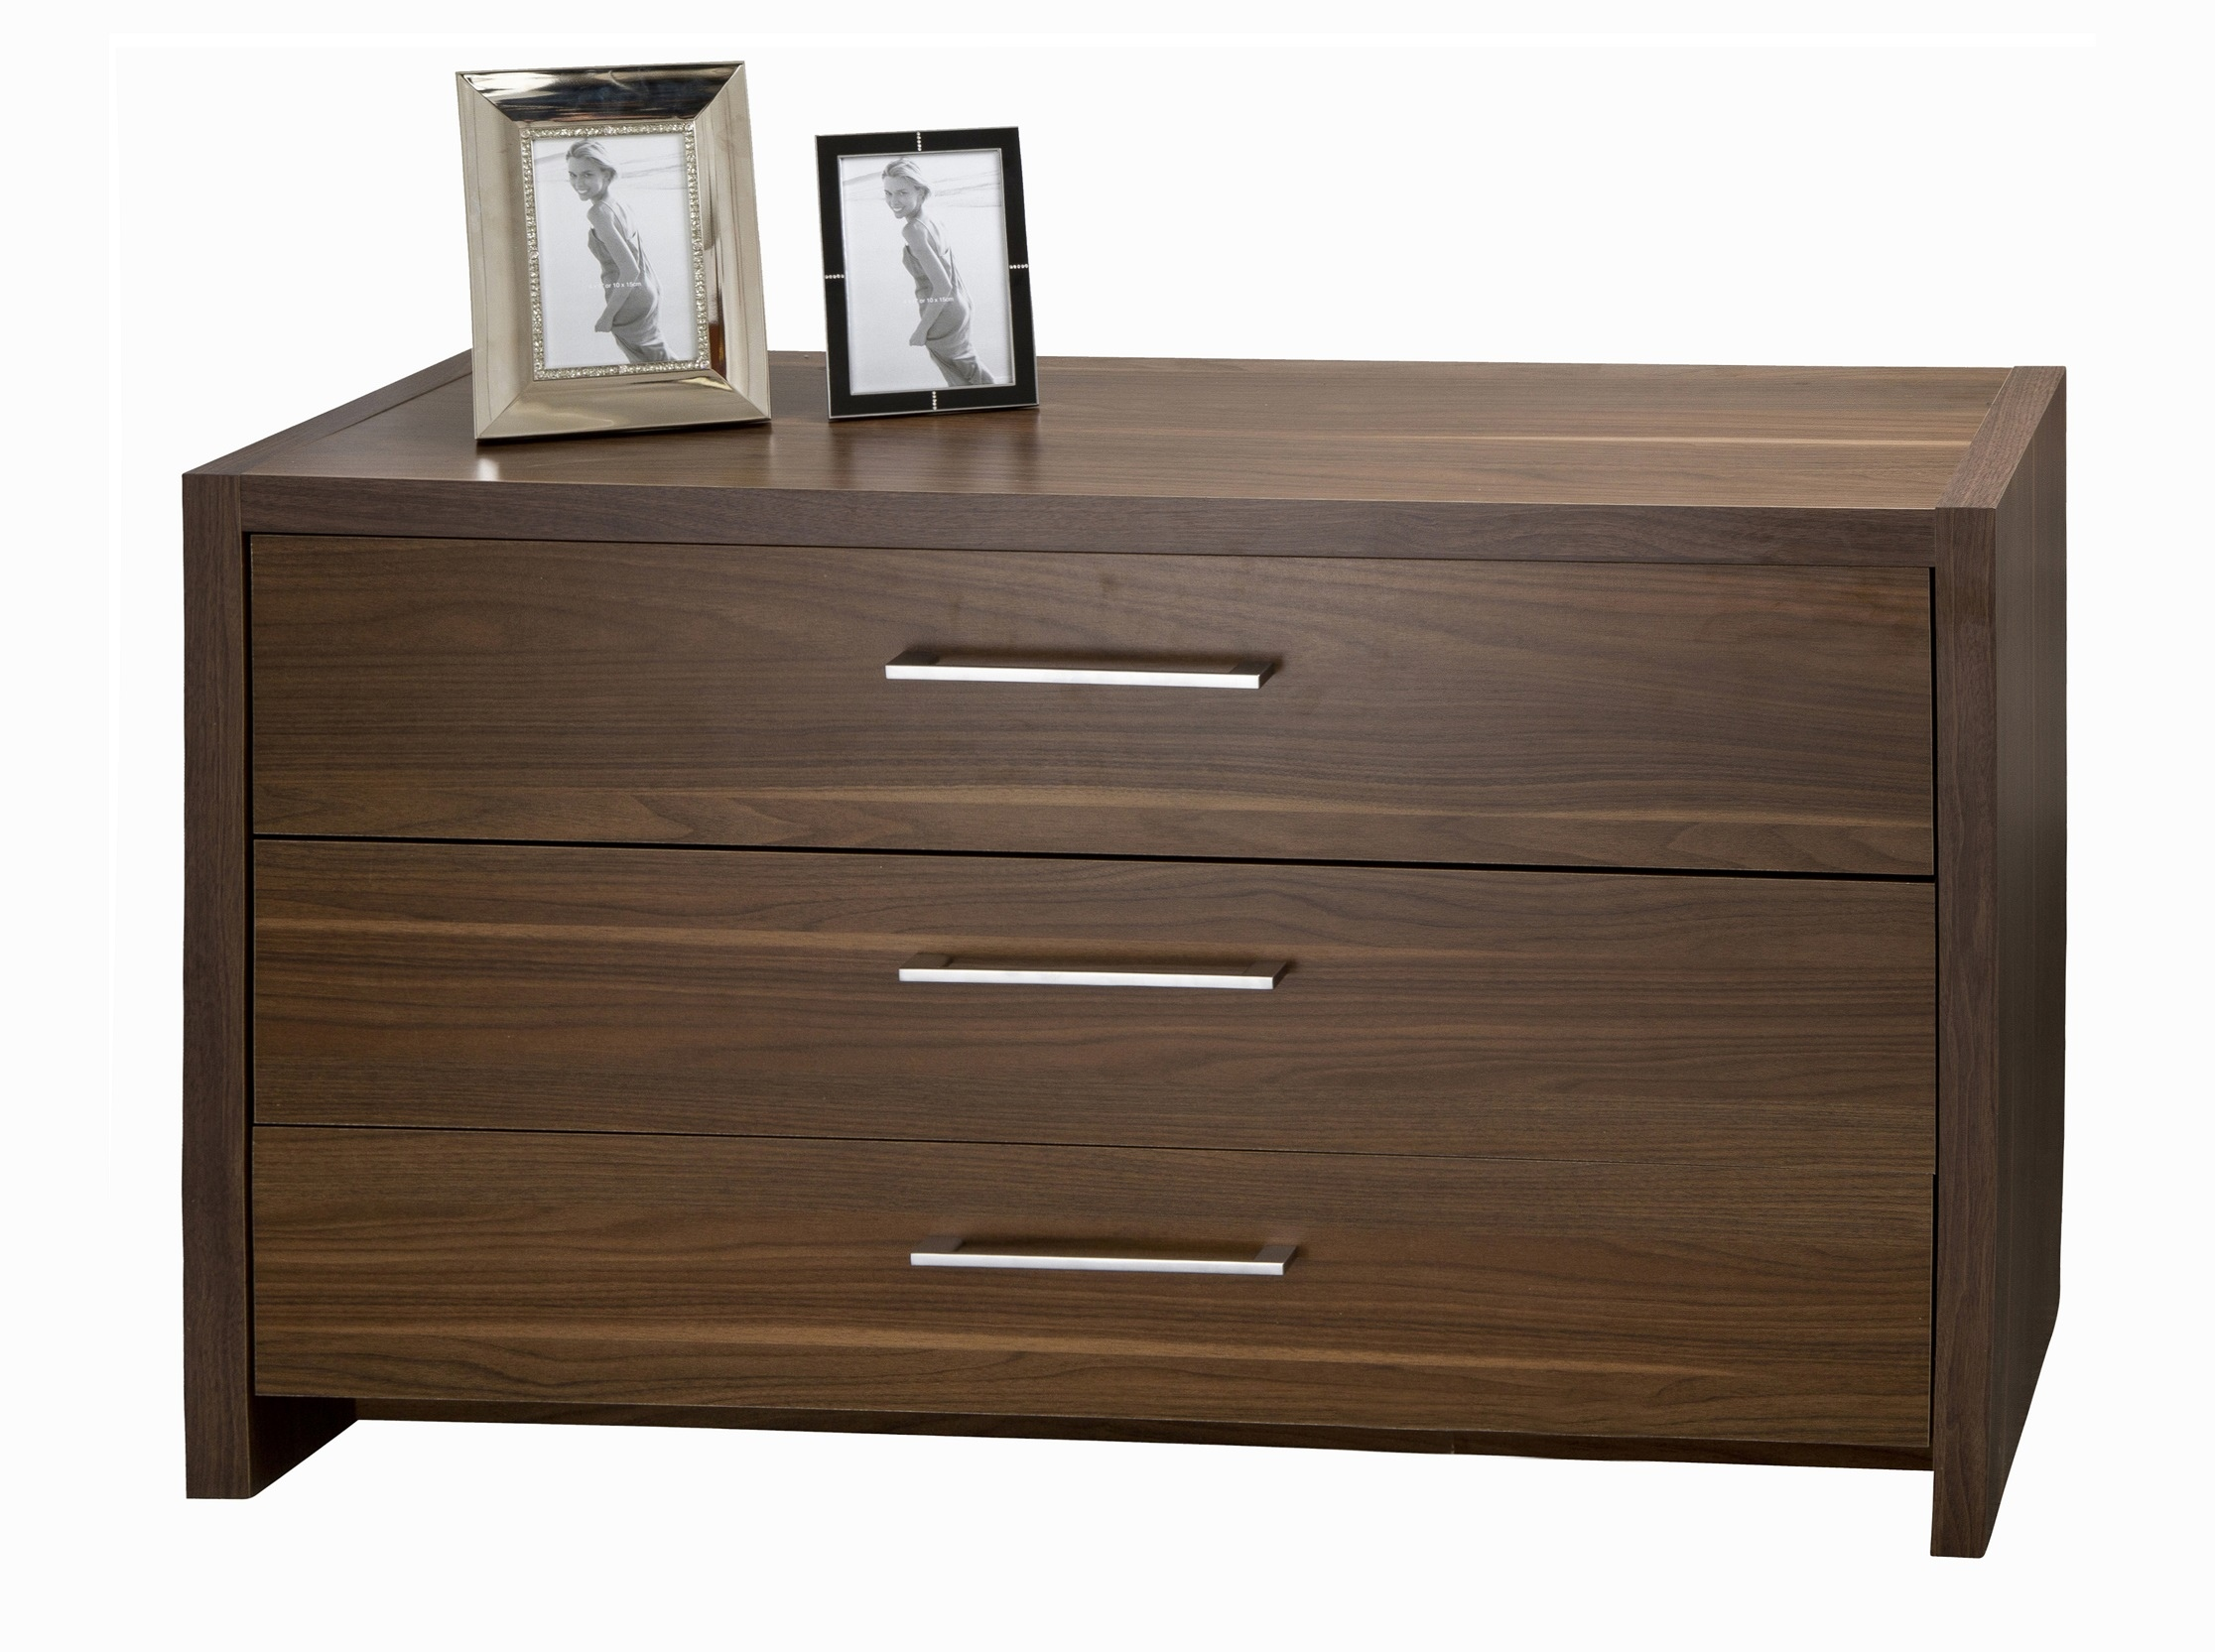 Amazing photo of Details about Chest Of 3 Drawers Walnut Unit Bedroom Furniture Wide  with #463426 color and 2232x1665 pixels